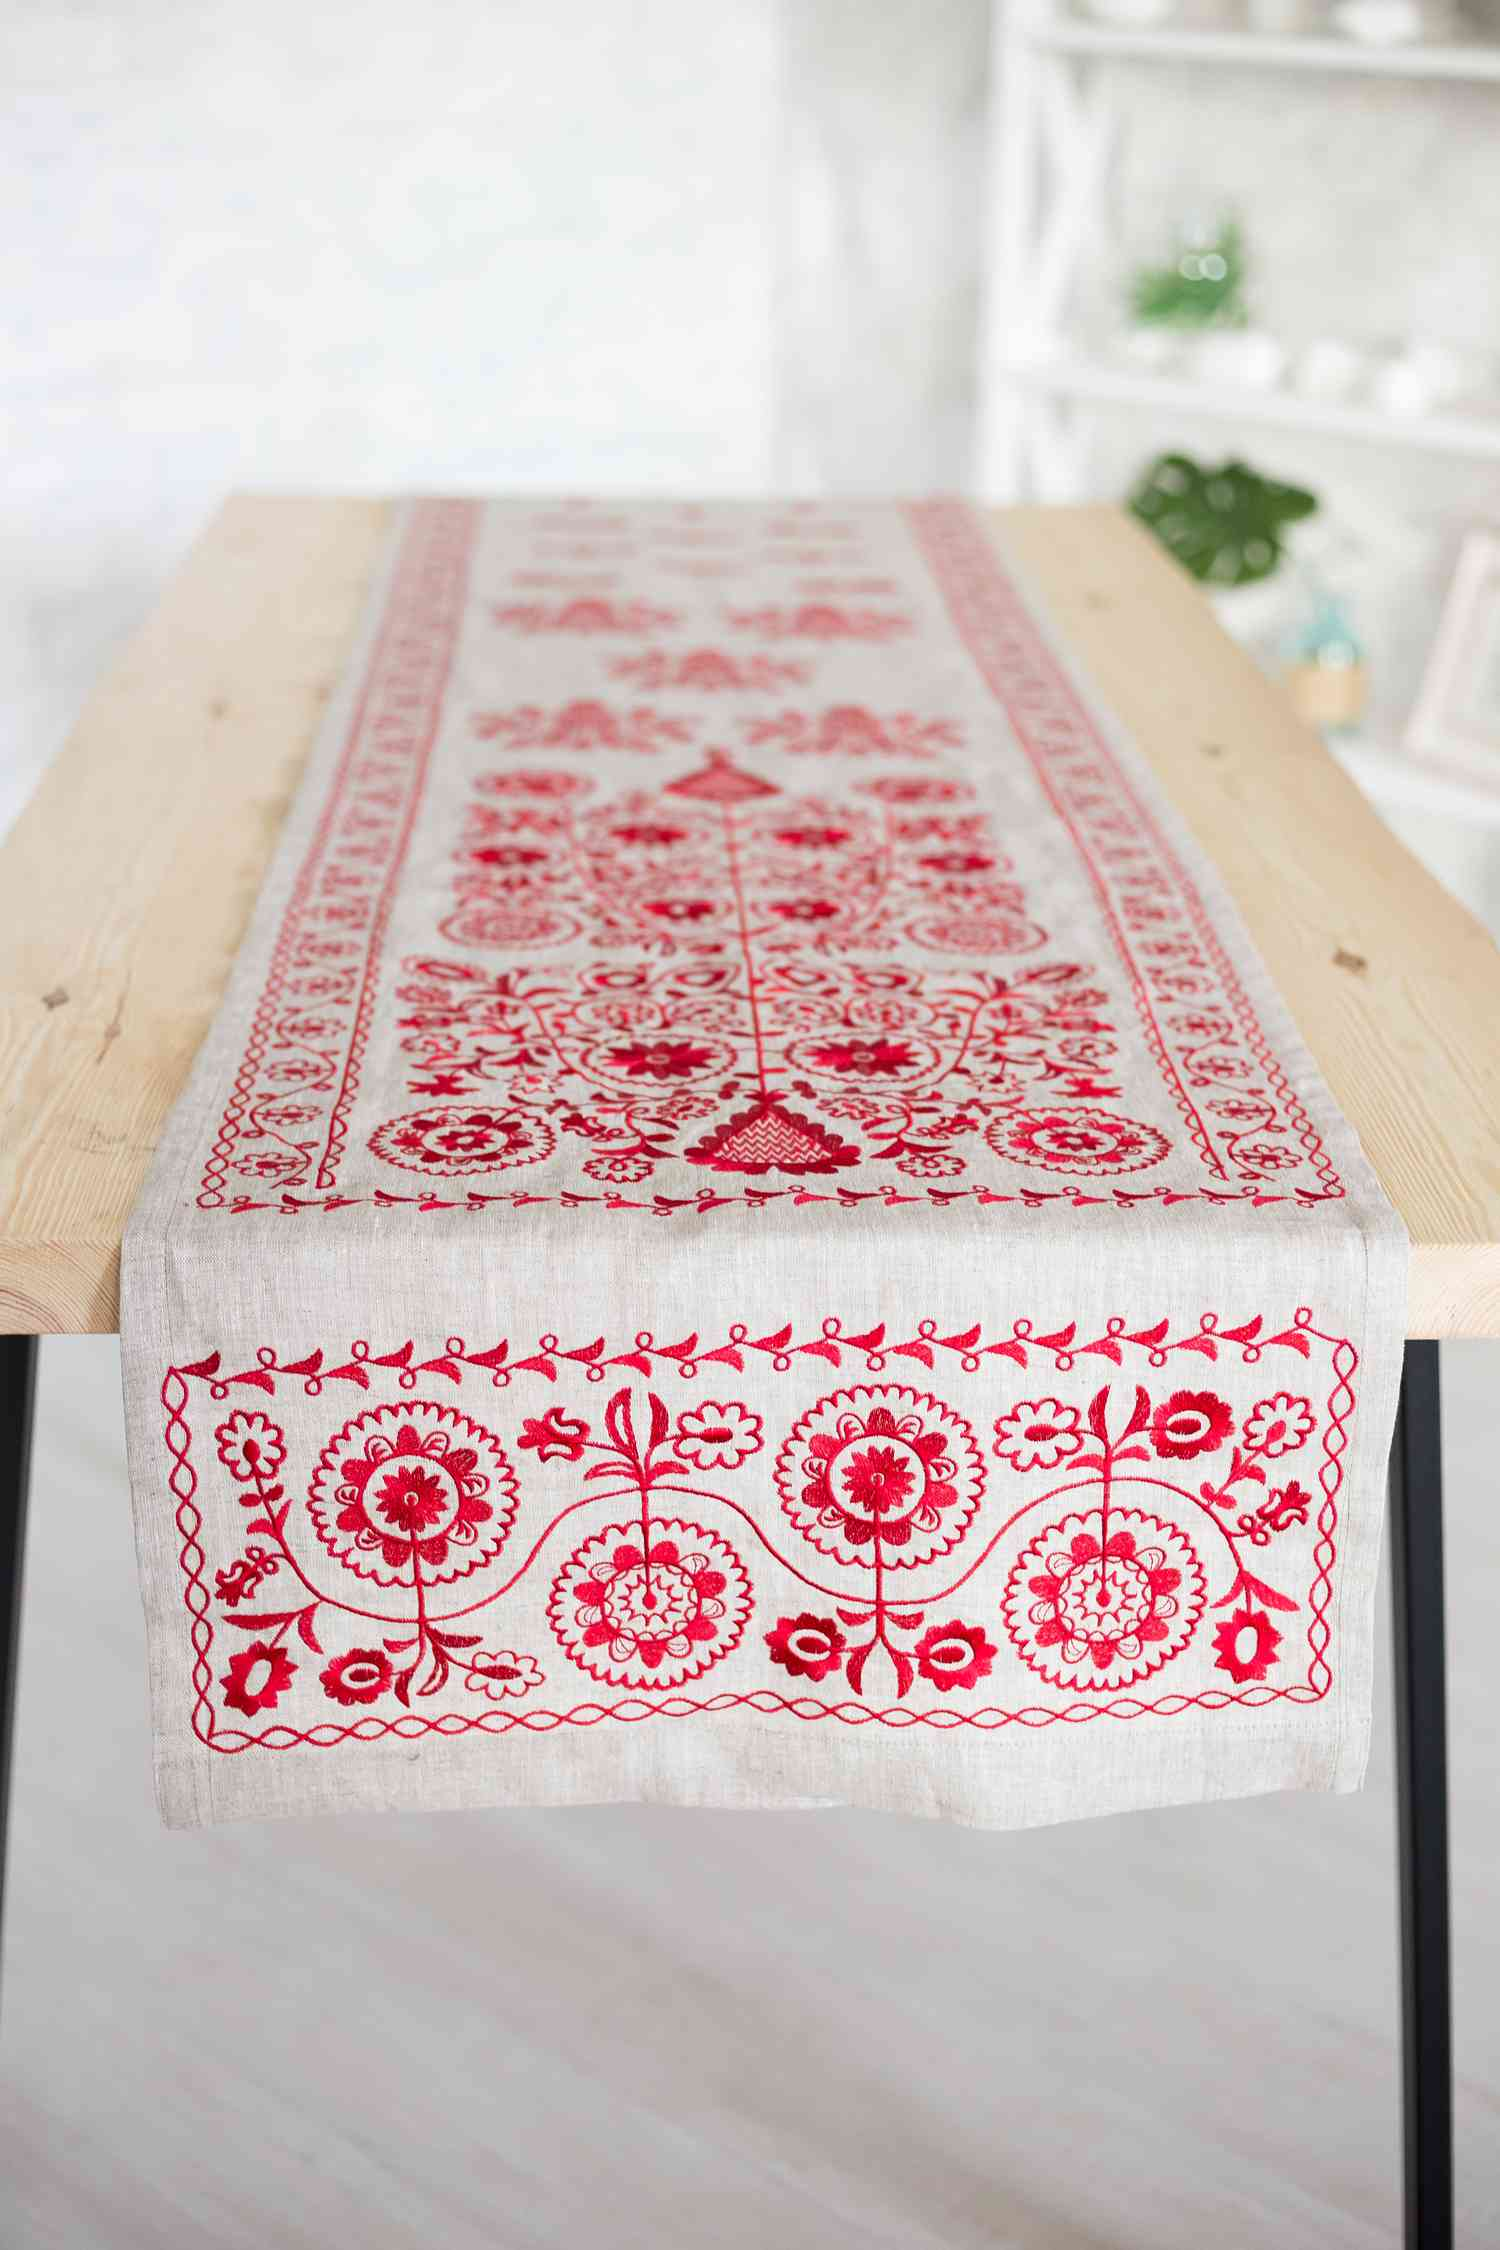 Ukrainian embroidered towels